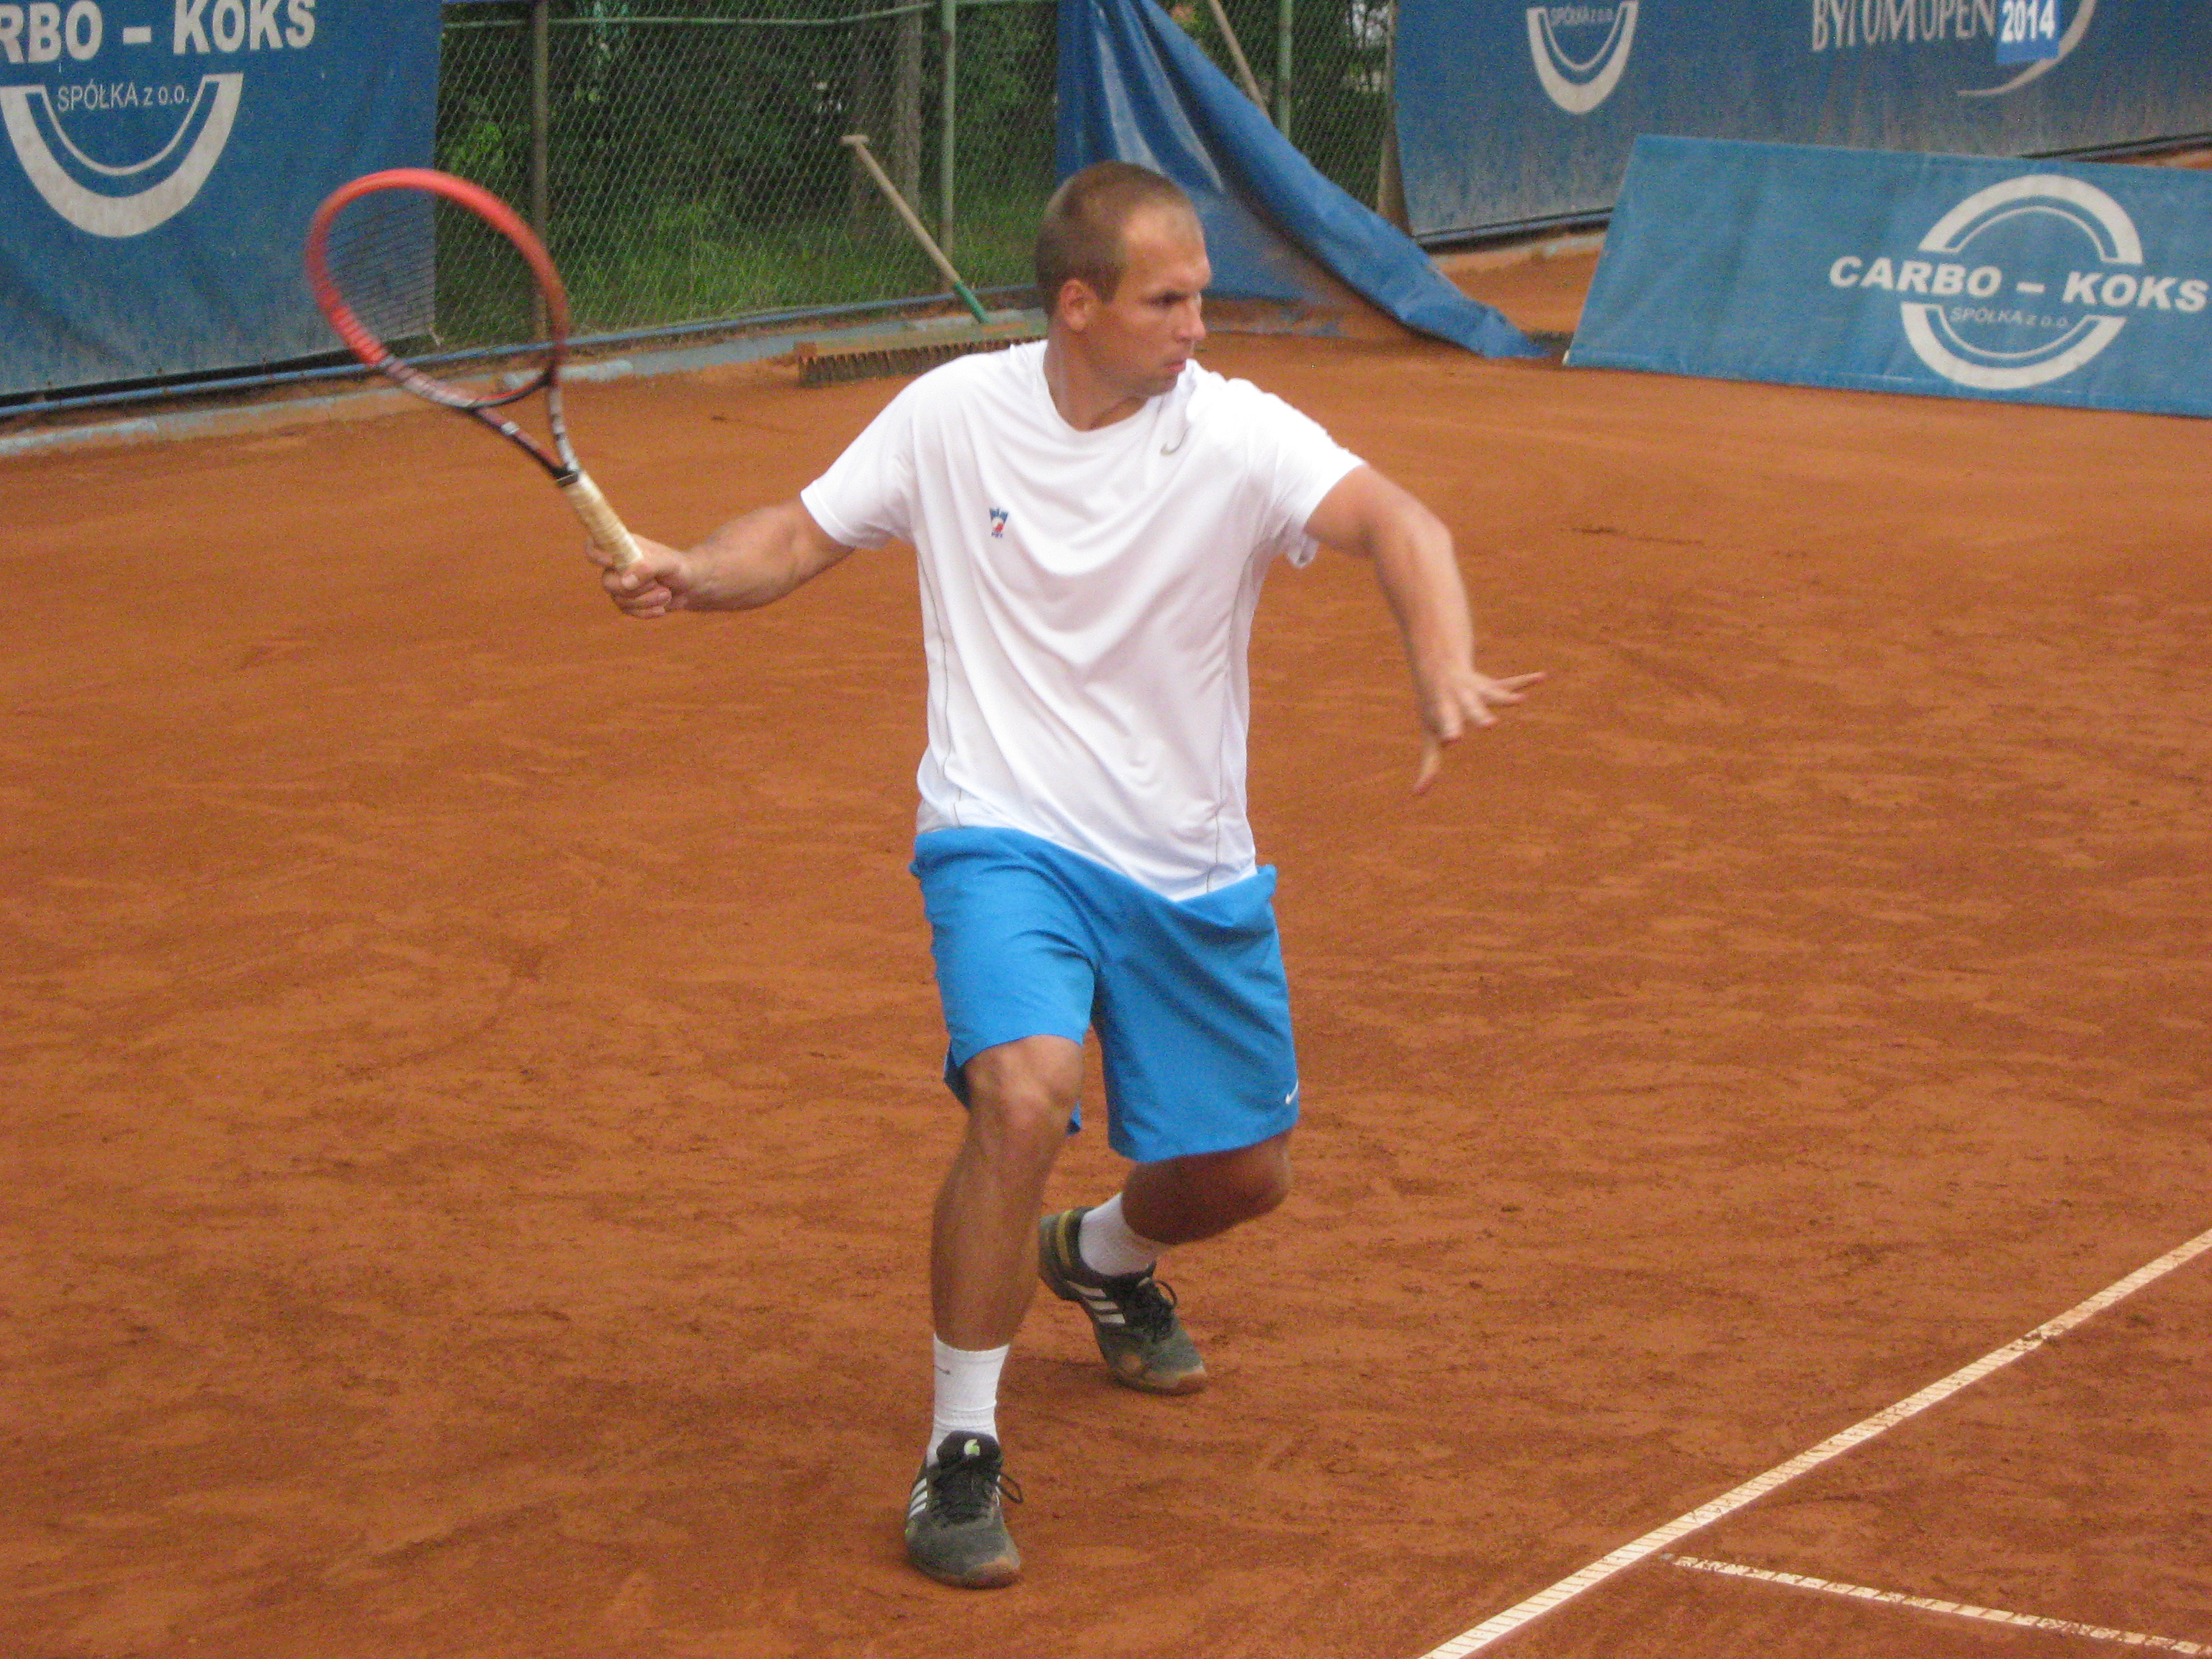 files/galeria/2014/ITF Futures Bytom Cup 2014/IMG_9601.JPG